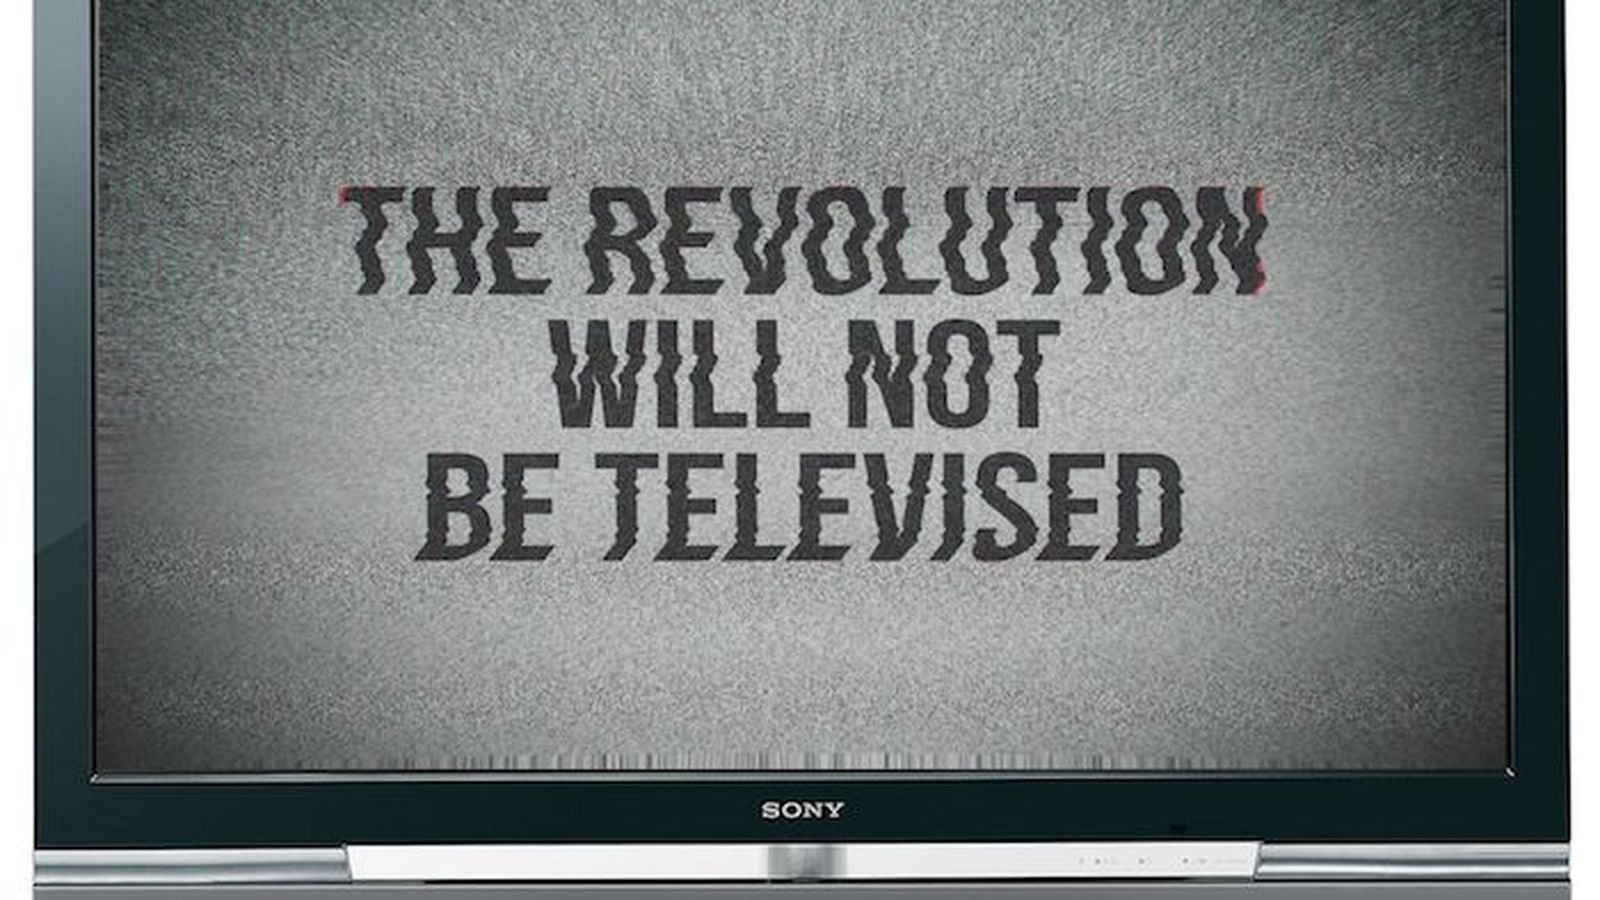 The Revolution Will Not Be Televised – Wikipedia